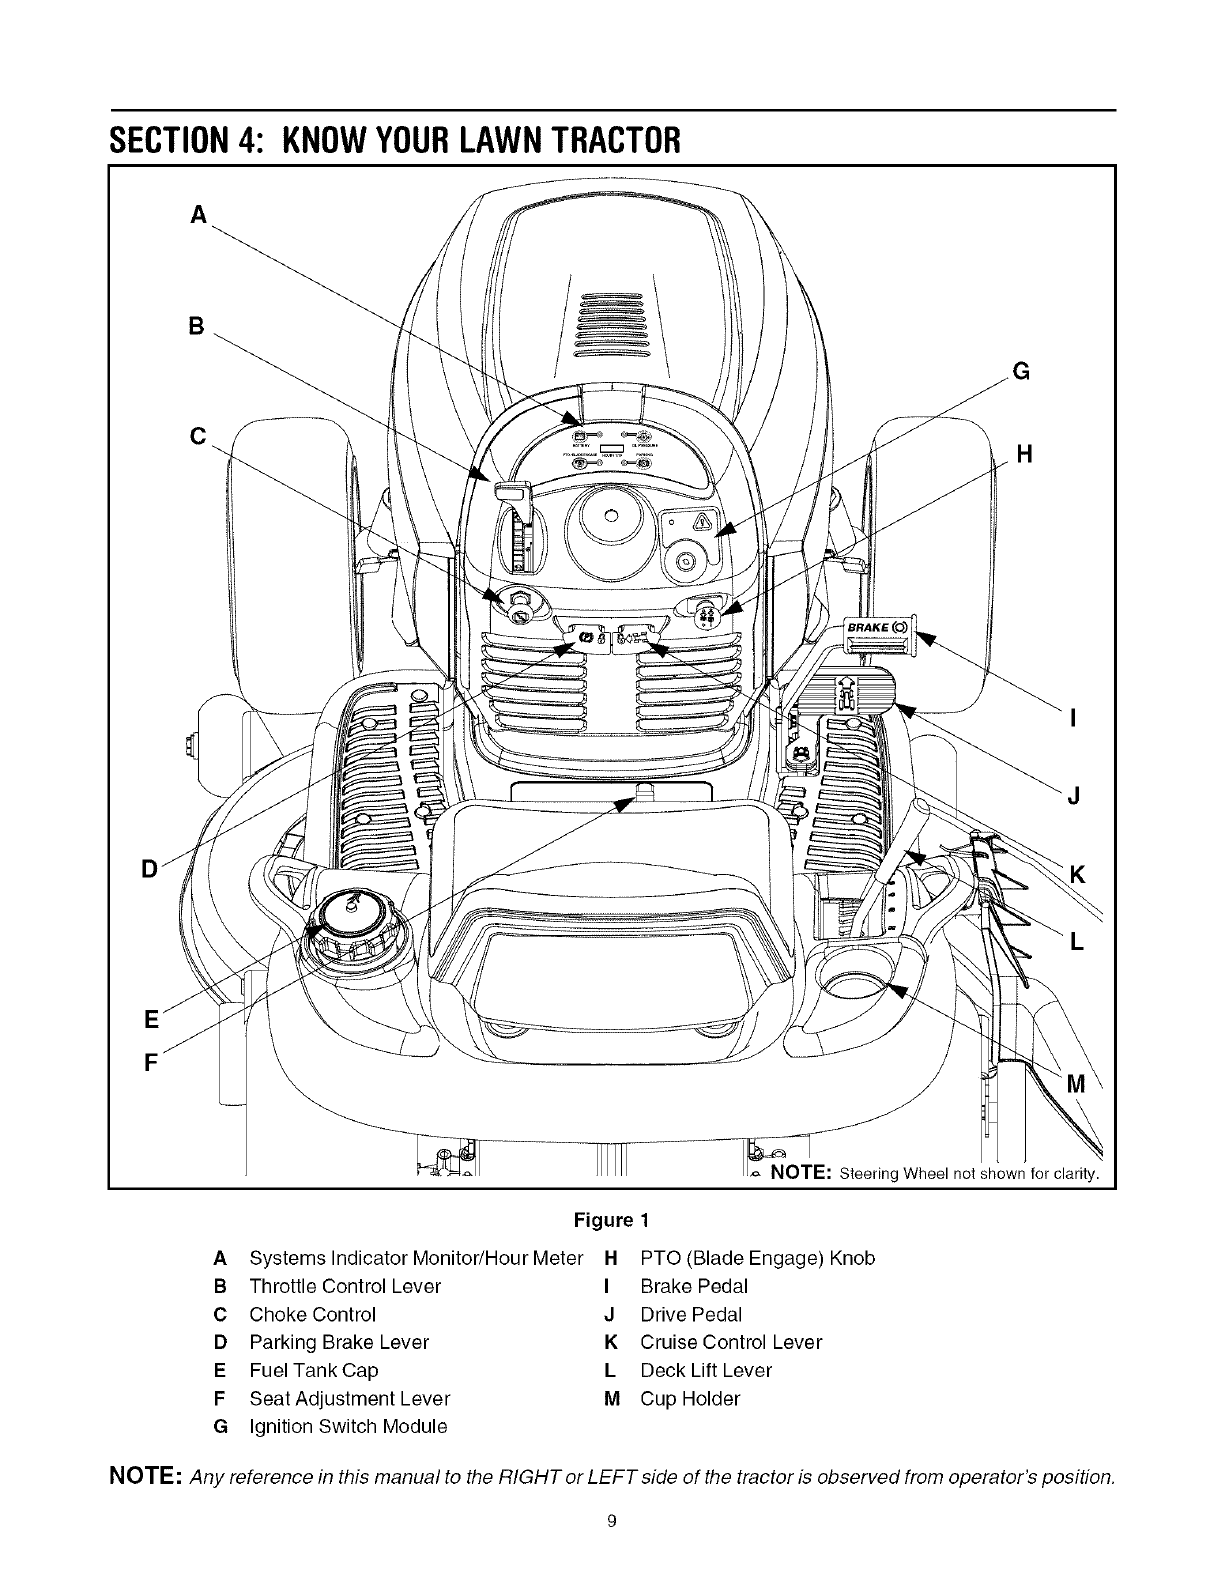 Page 9 of Cub Cadet Lawn Mower LT1050 User Guide